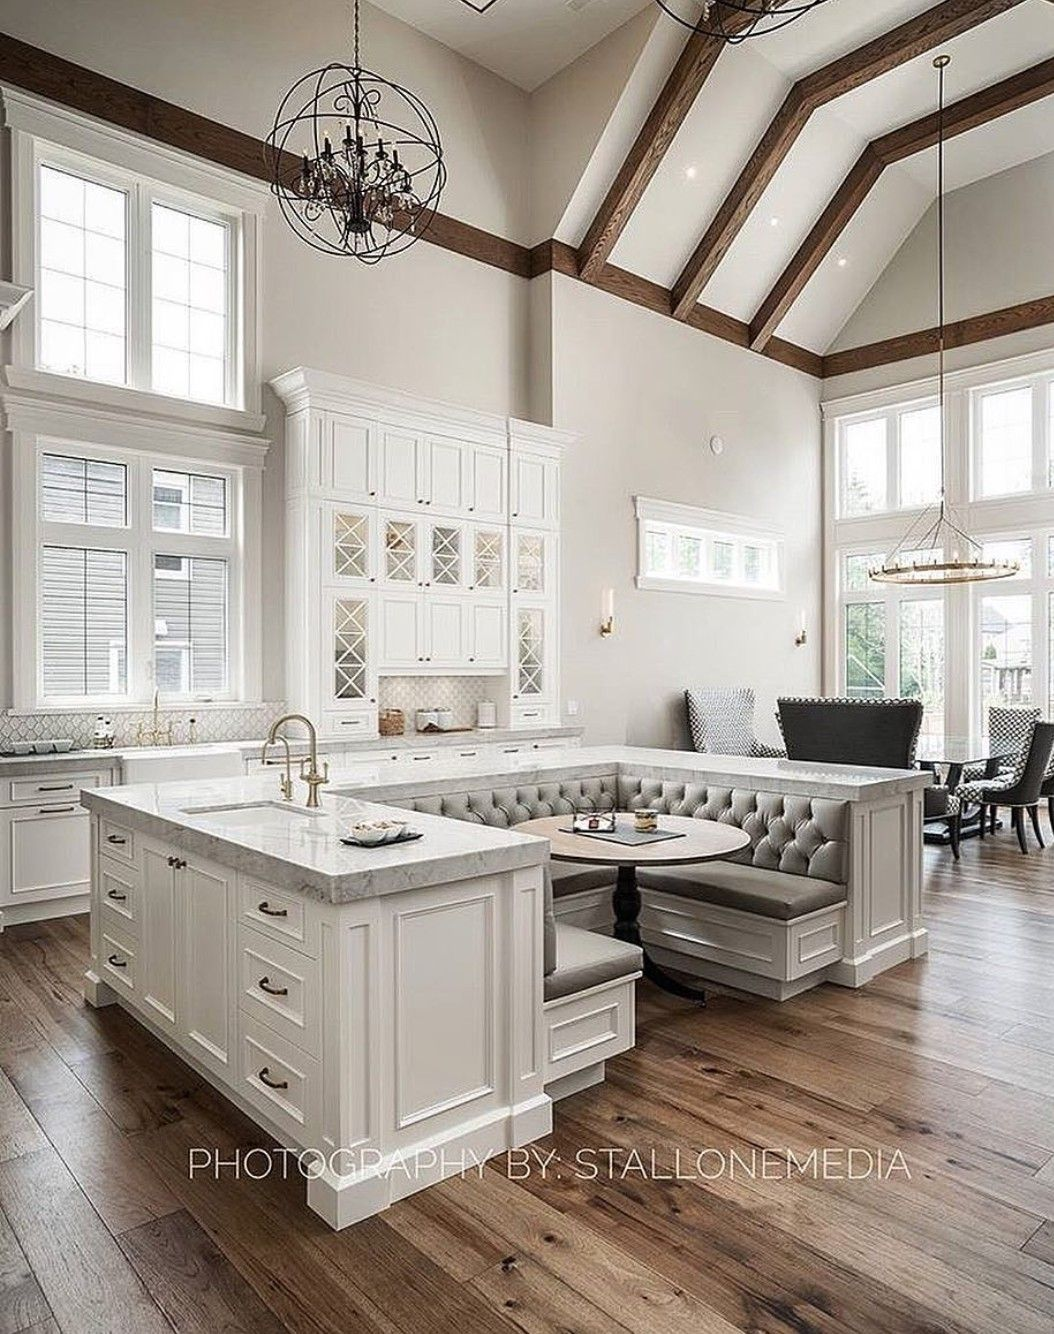 Vaulted ceilings with wooden beams | flat | Pinterest | Küche ...